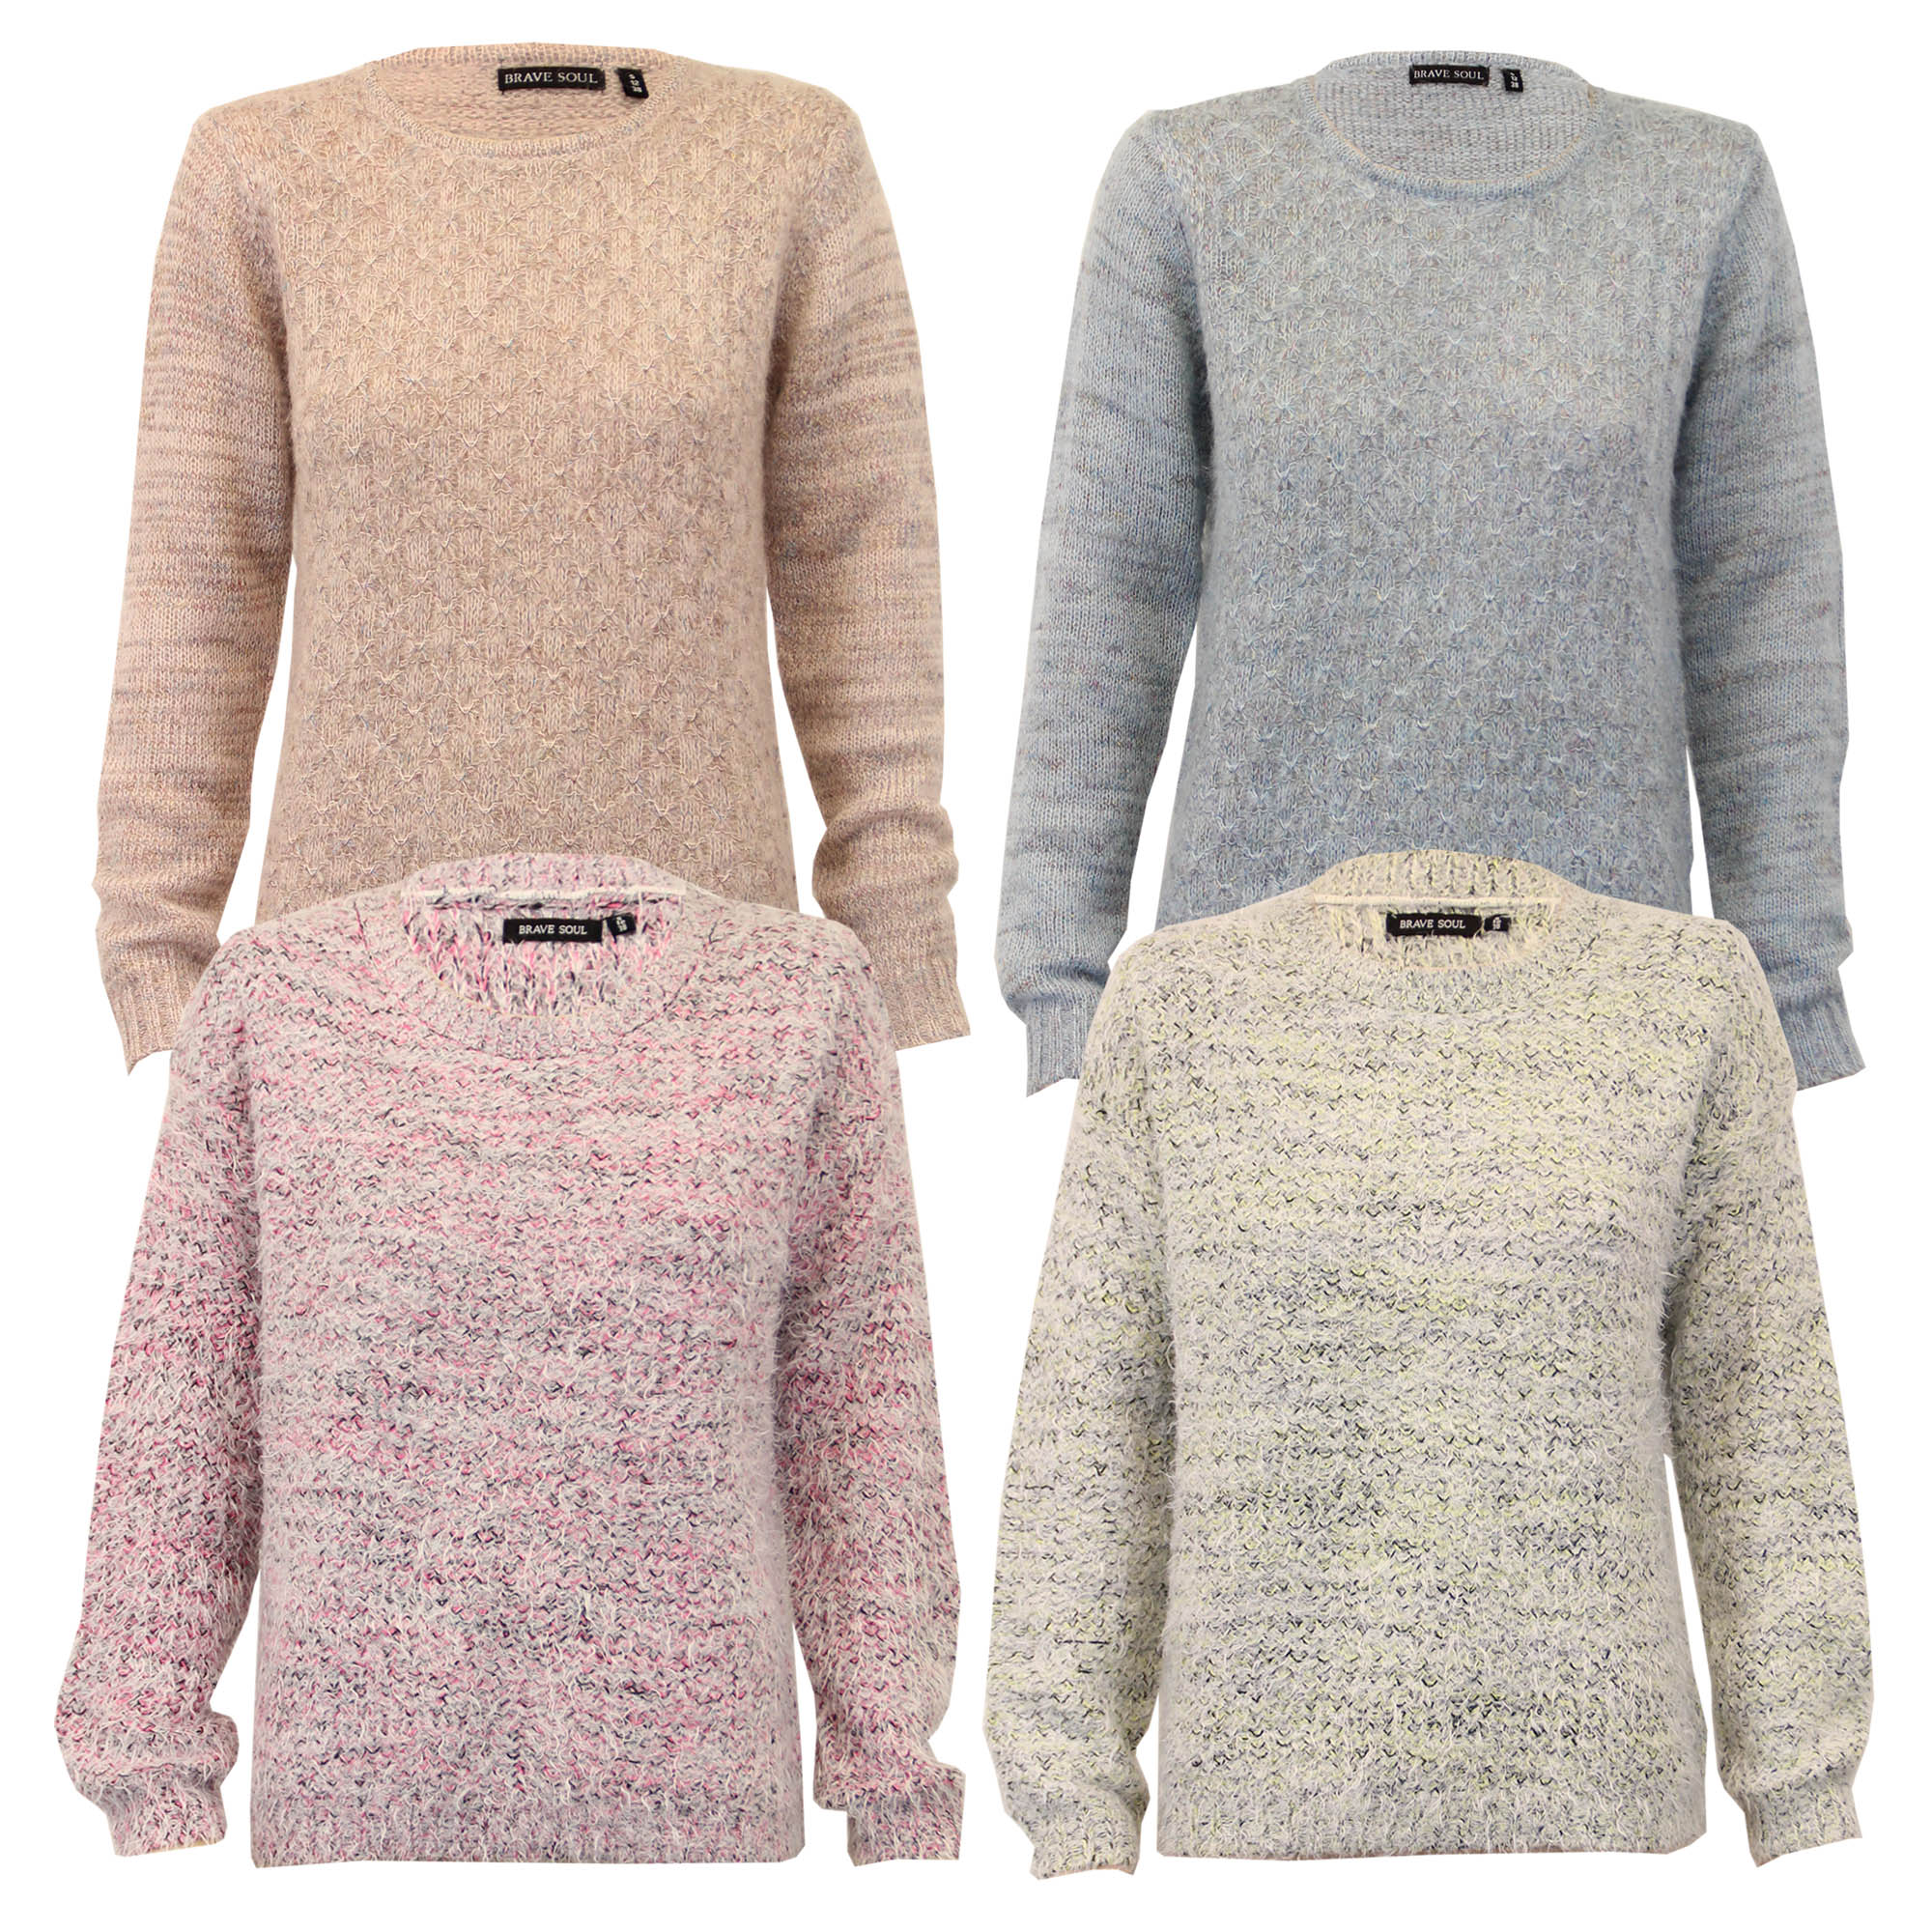 Ladies Mohair Jumper Brave Soul Womens Knitted Sweater Crew Neck Top ... 7600c3a37